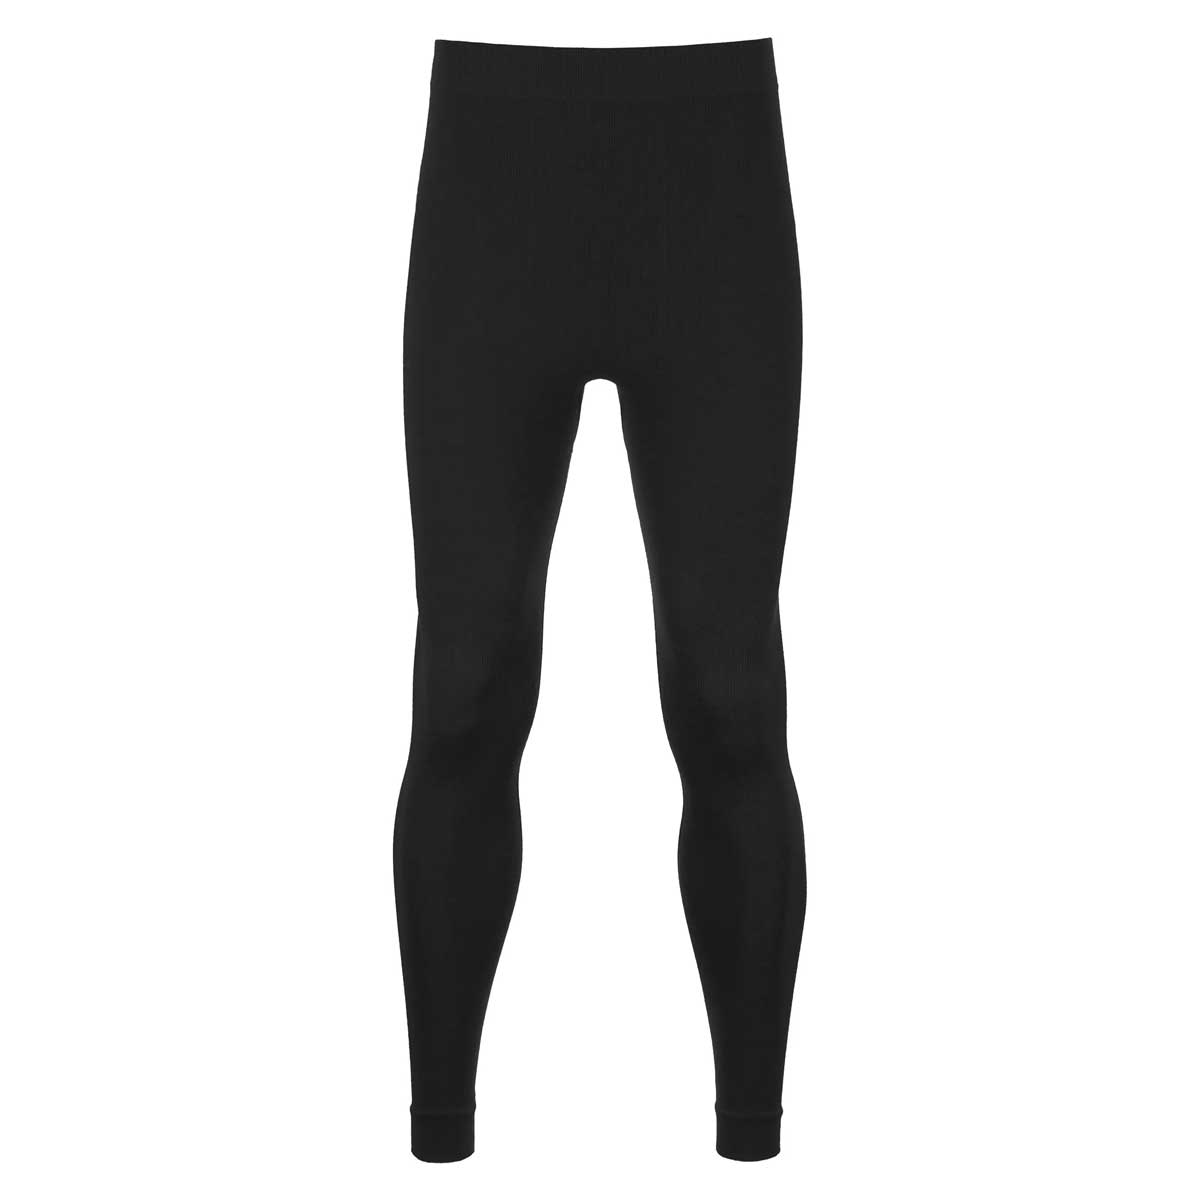 Ortovox Men's Competition Long Pants in Black Raven